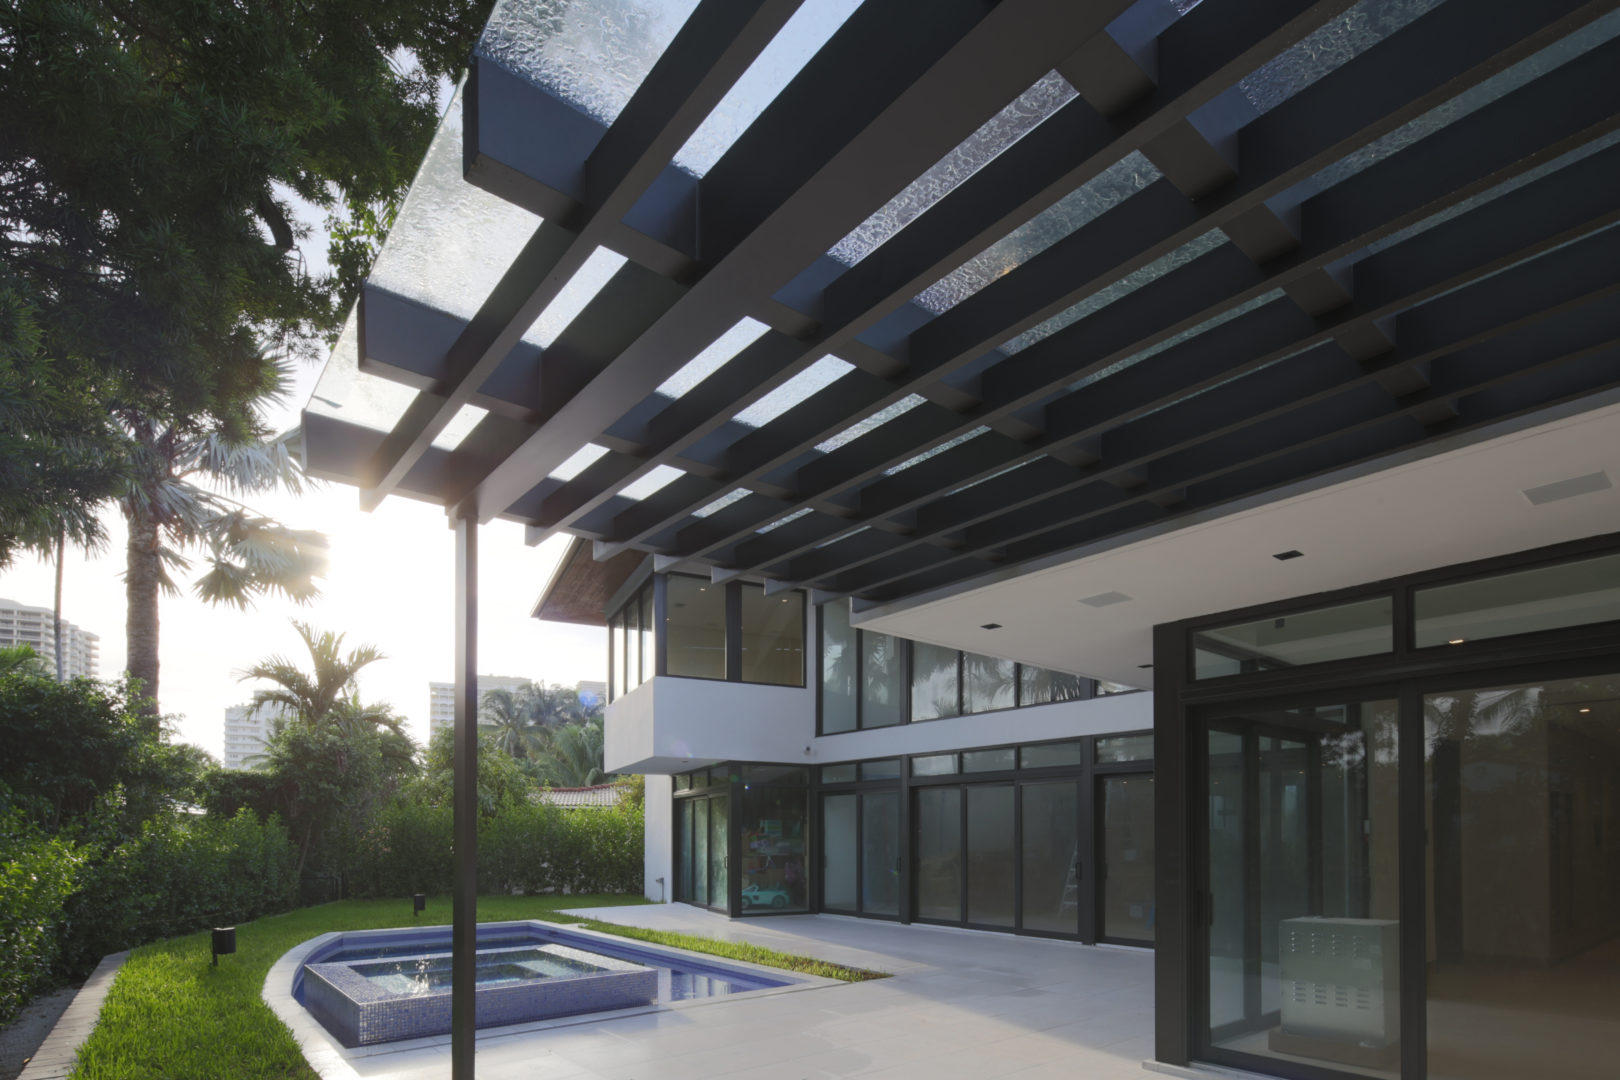 Bal Harbour Tropical Residence Modern High-end Construction pavers concrete ipe wood facade stone natural eyebrow balcony pool trellis aluminum glass cover bbq